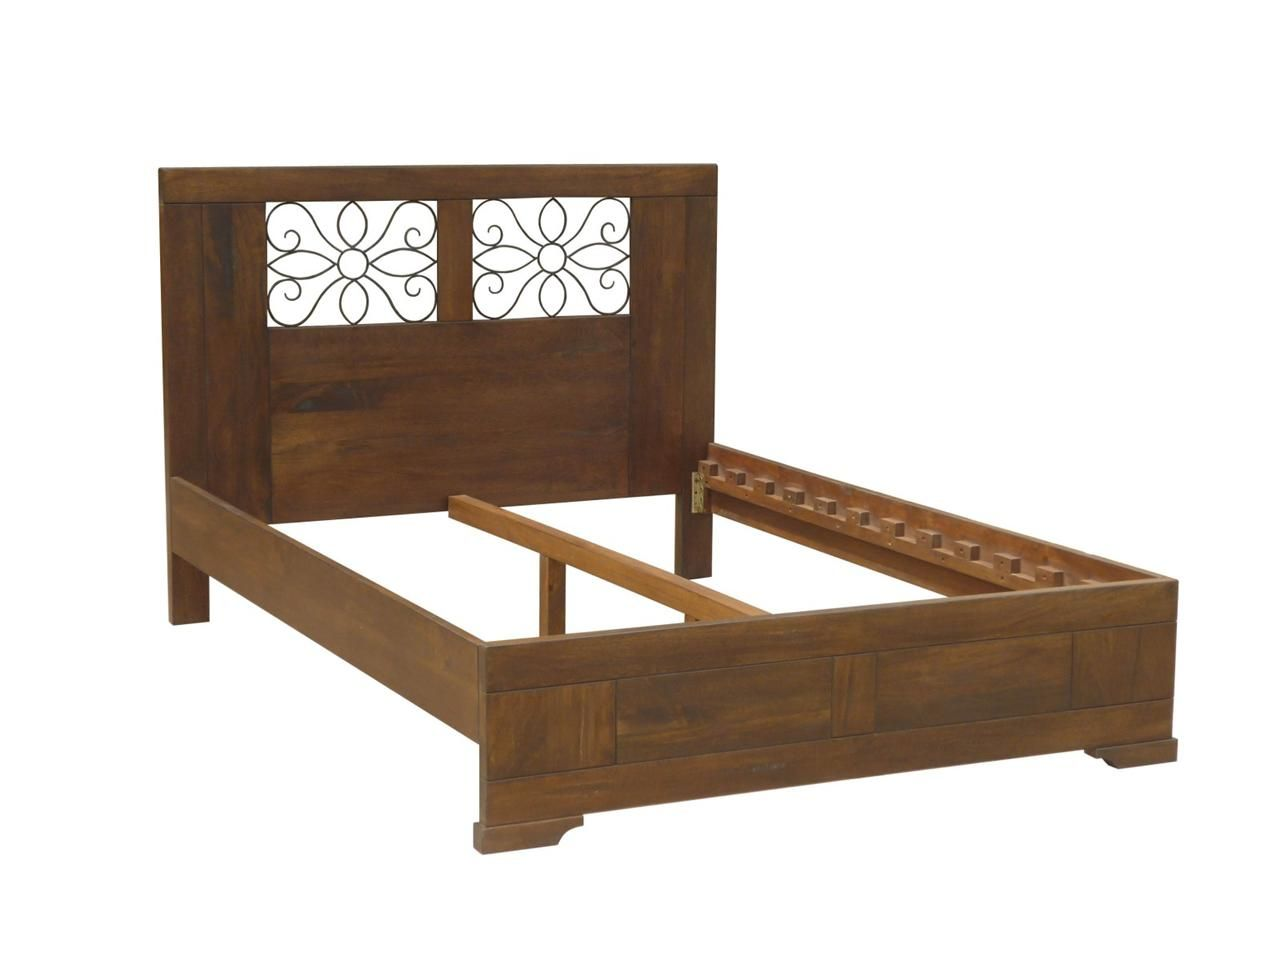 solid hardwood timber tuscany grande country european style double bed frame ebay - Ebay Bed Frames